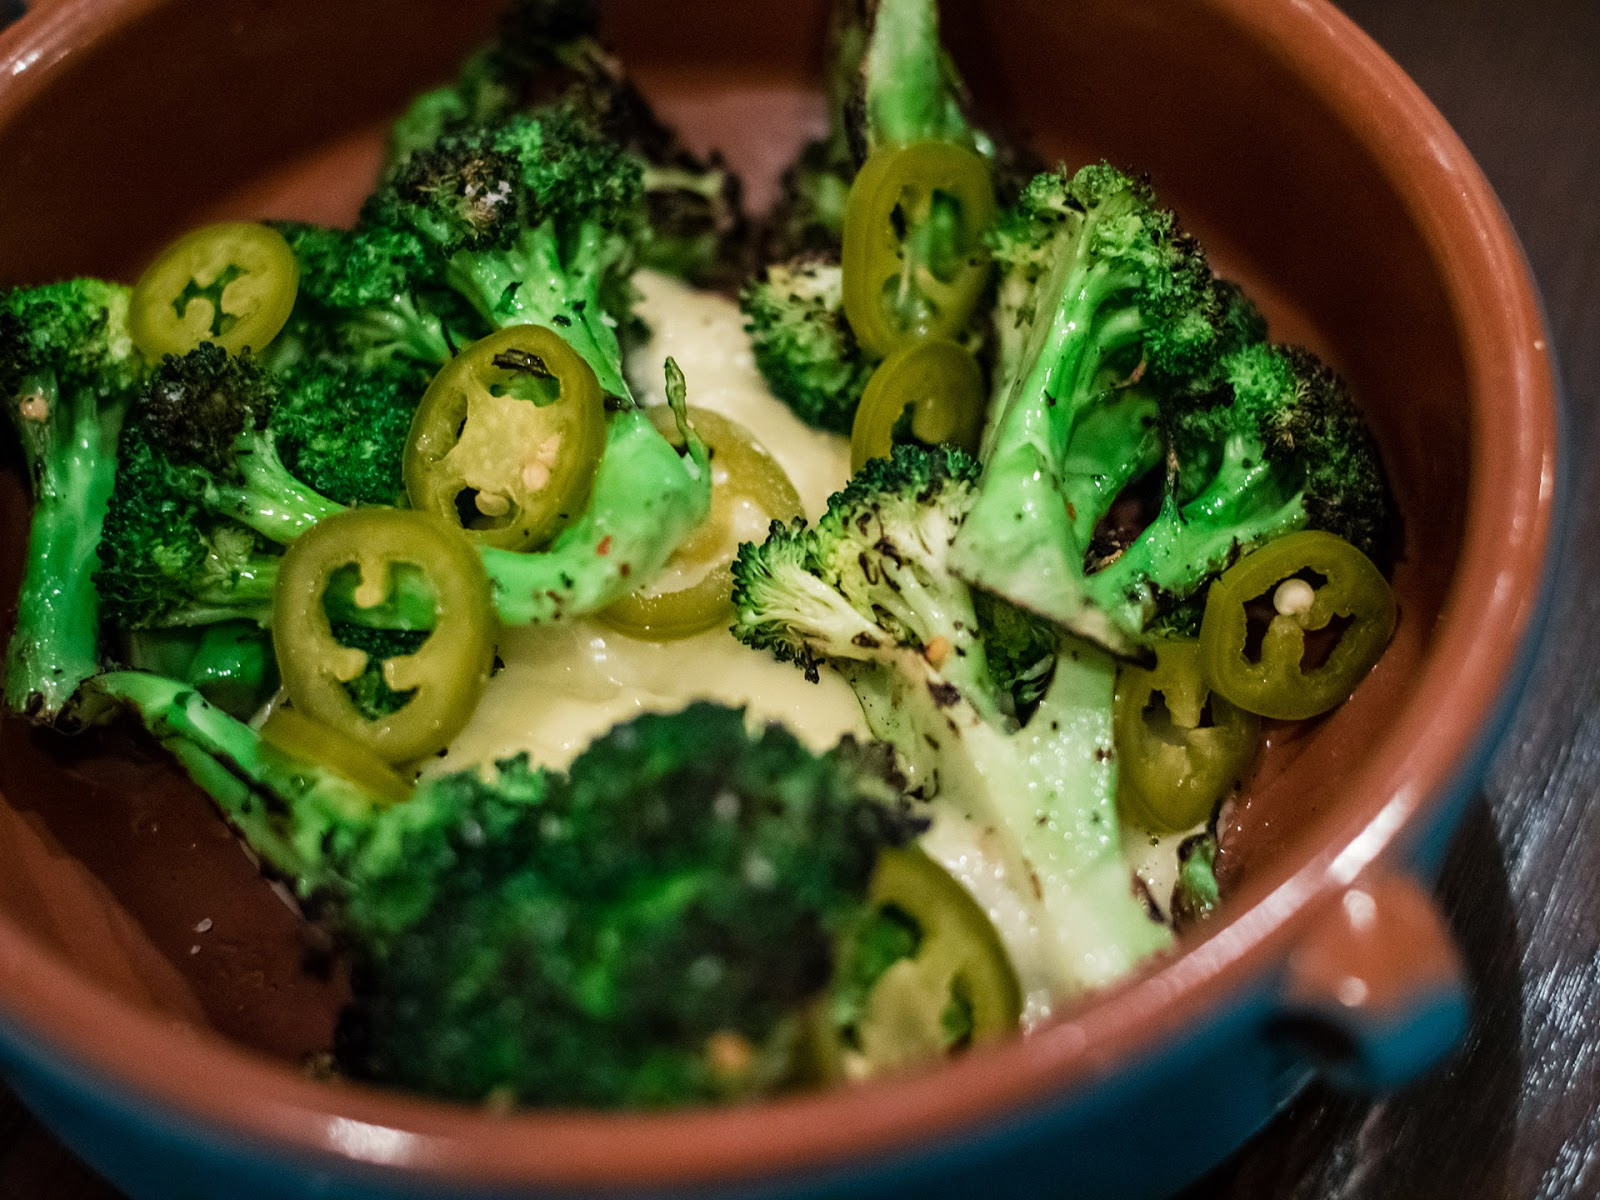 Charred broccoli with pickled jalapenos and garlic sauce at Mezon | Local Food Rocks